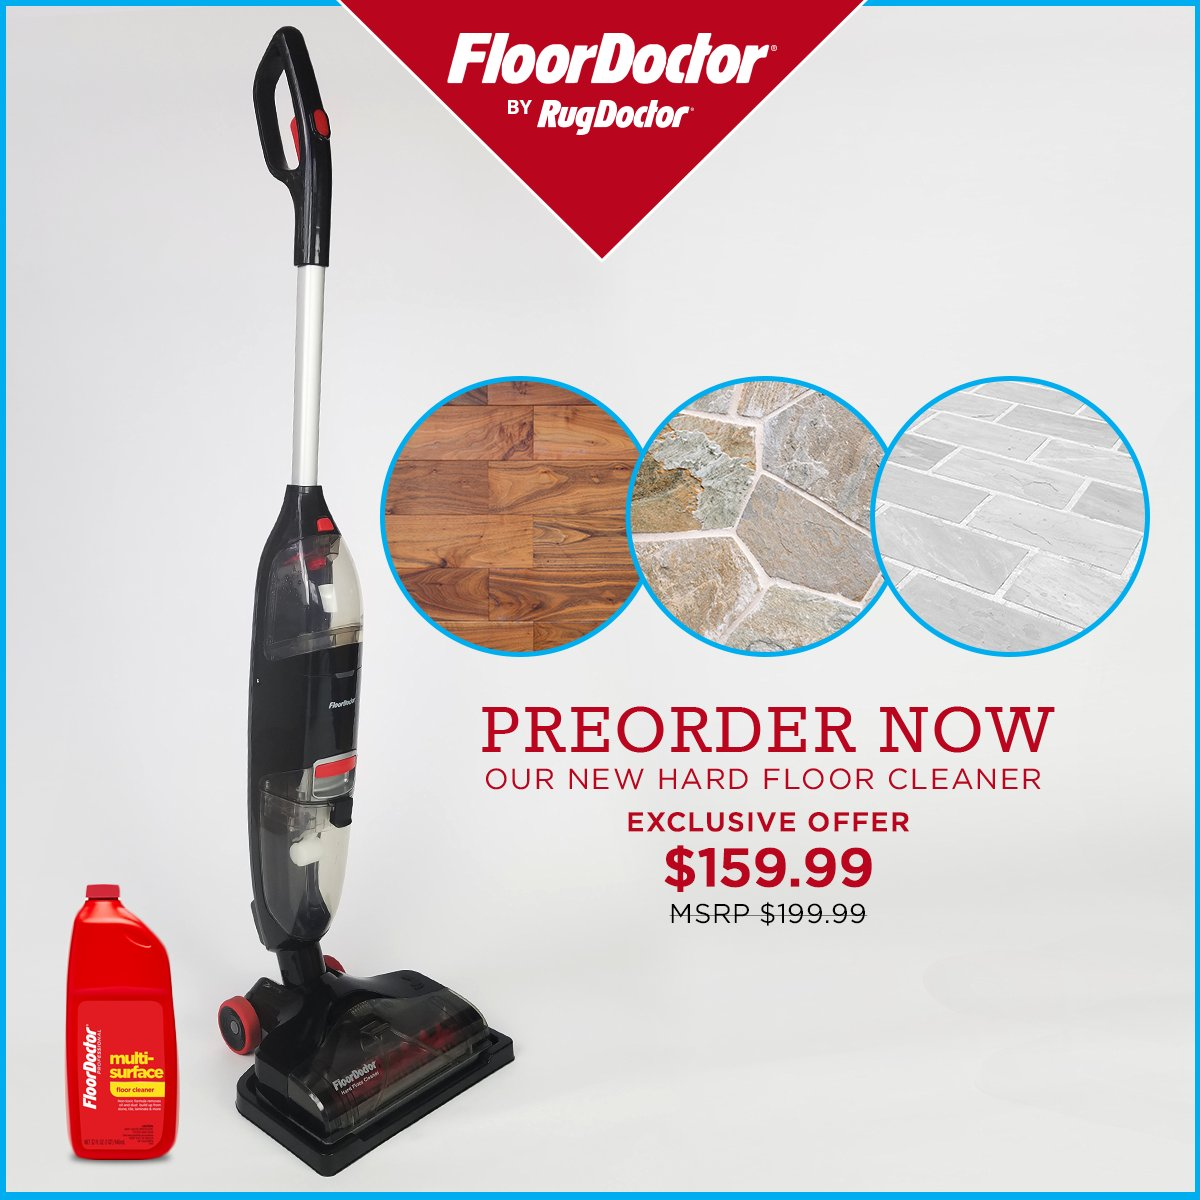 Rug Doctor On Twitter Pre Order The Floor Hard Cleaner Now And Deep Clean Wood Tile Laminate Stone Floors Https T Co 6mtkdfg39k